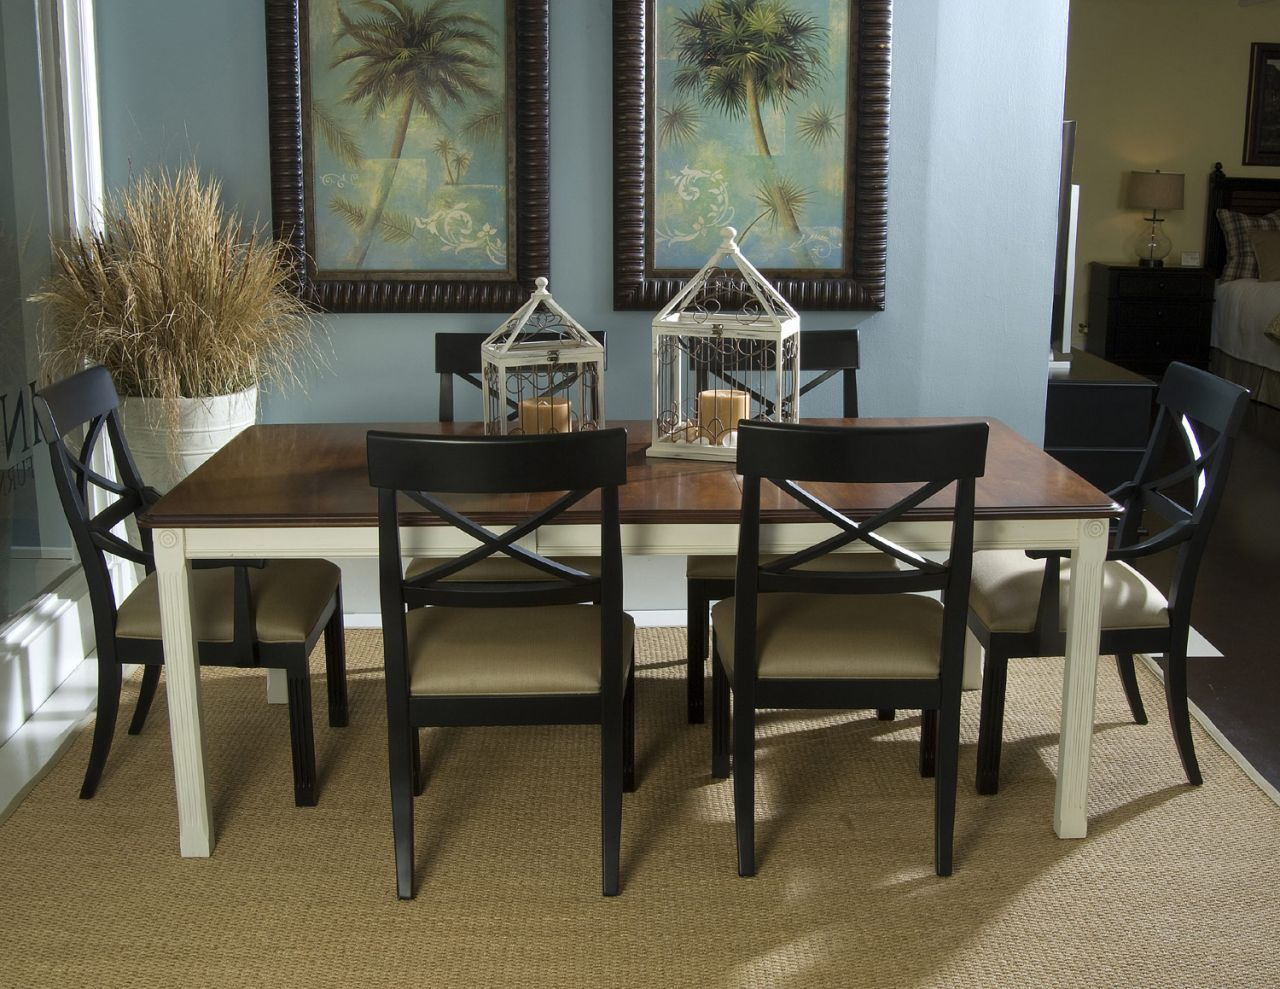 Home Gallery Furniture For Dining Room Sets 7 Pc Villages Of Gulf Breeze Rectangular Leg Dining Tabl Cheap Dining Room Sets Dining Room Sets Dining Table Legs